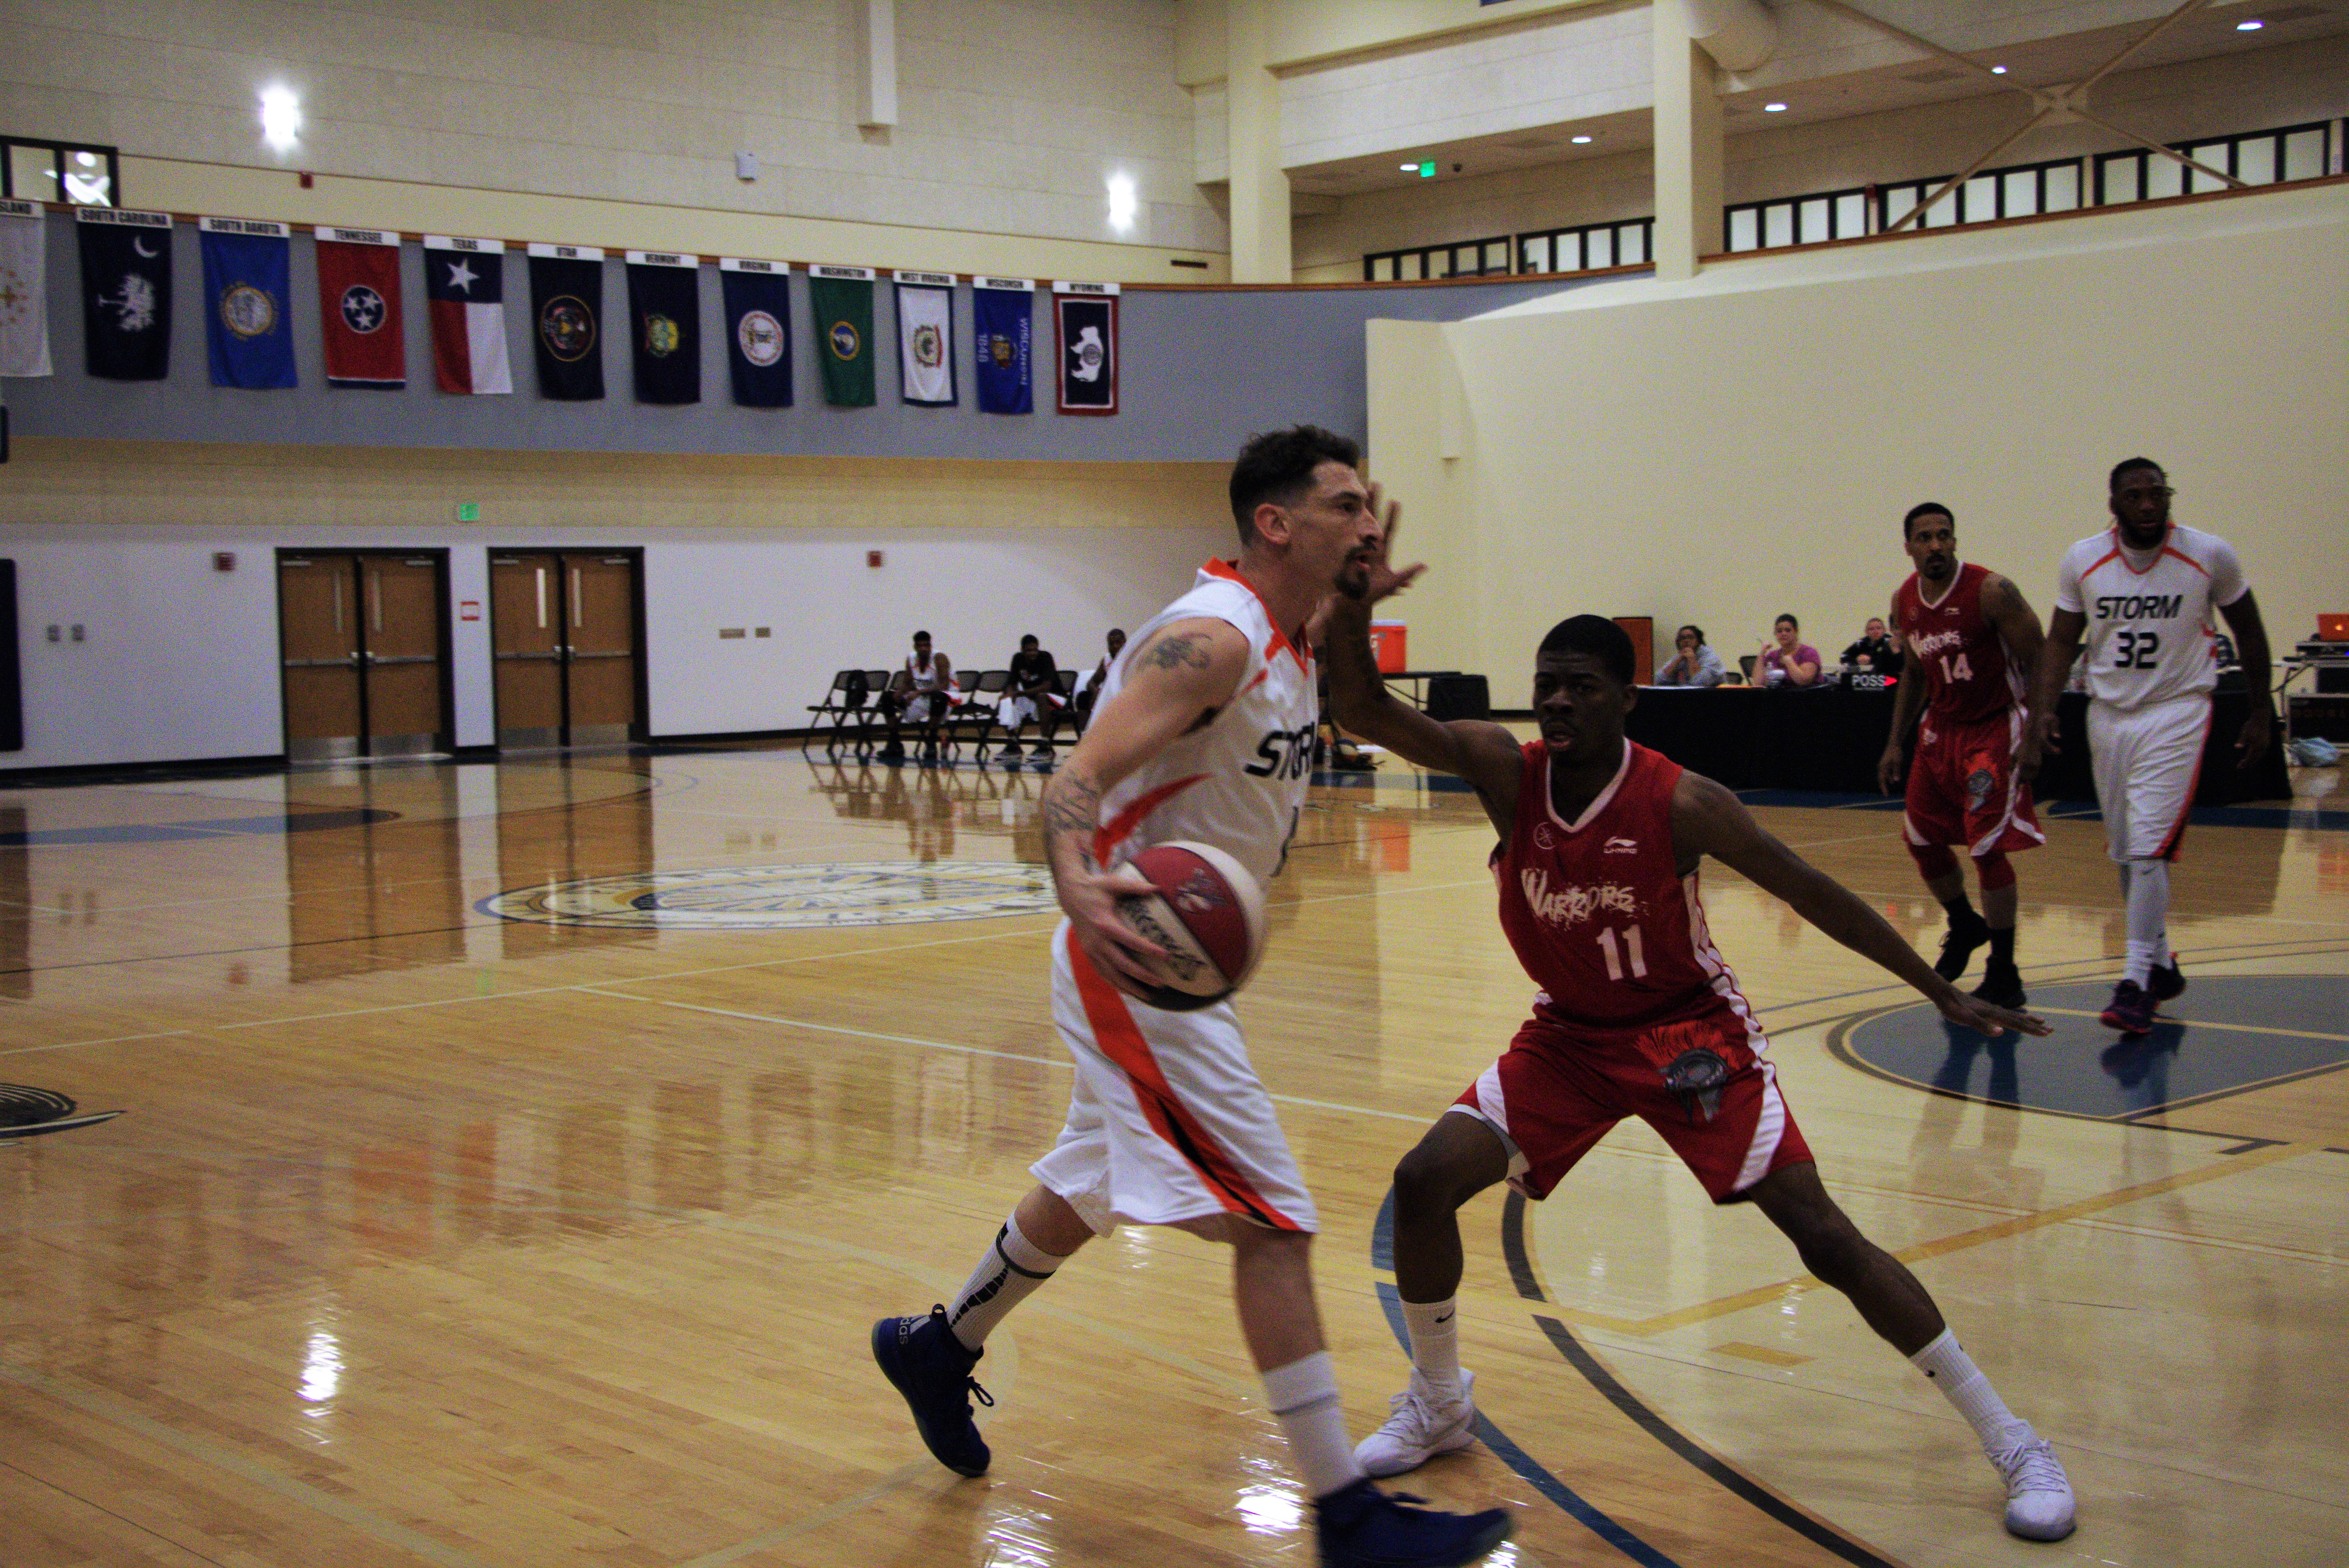 Virginia Storm forward Randy Gill faces an opponent from the DMV Warriors during a game at Patrick Henry College (PHC)